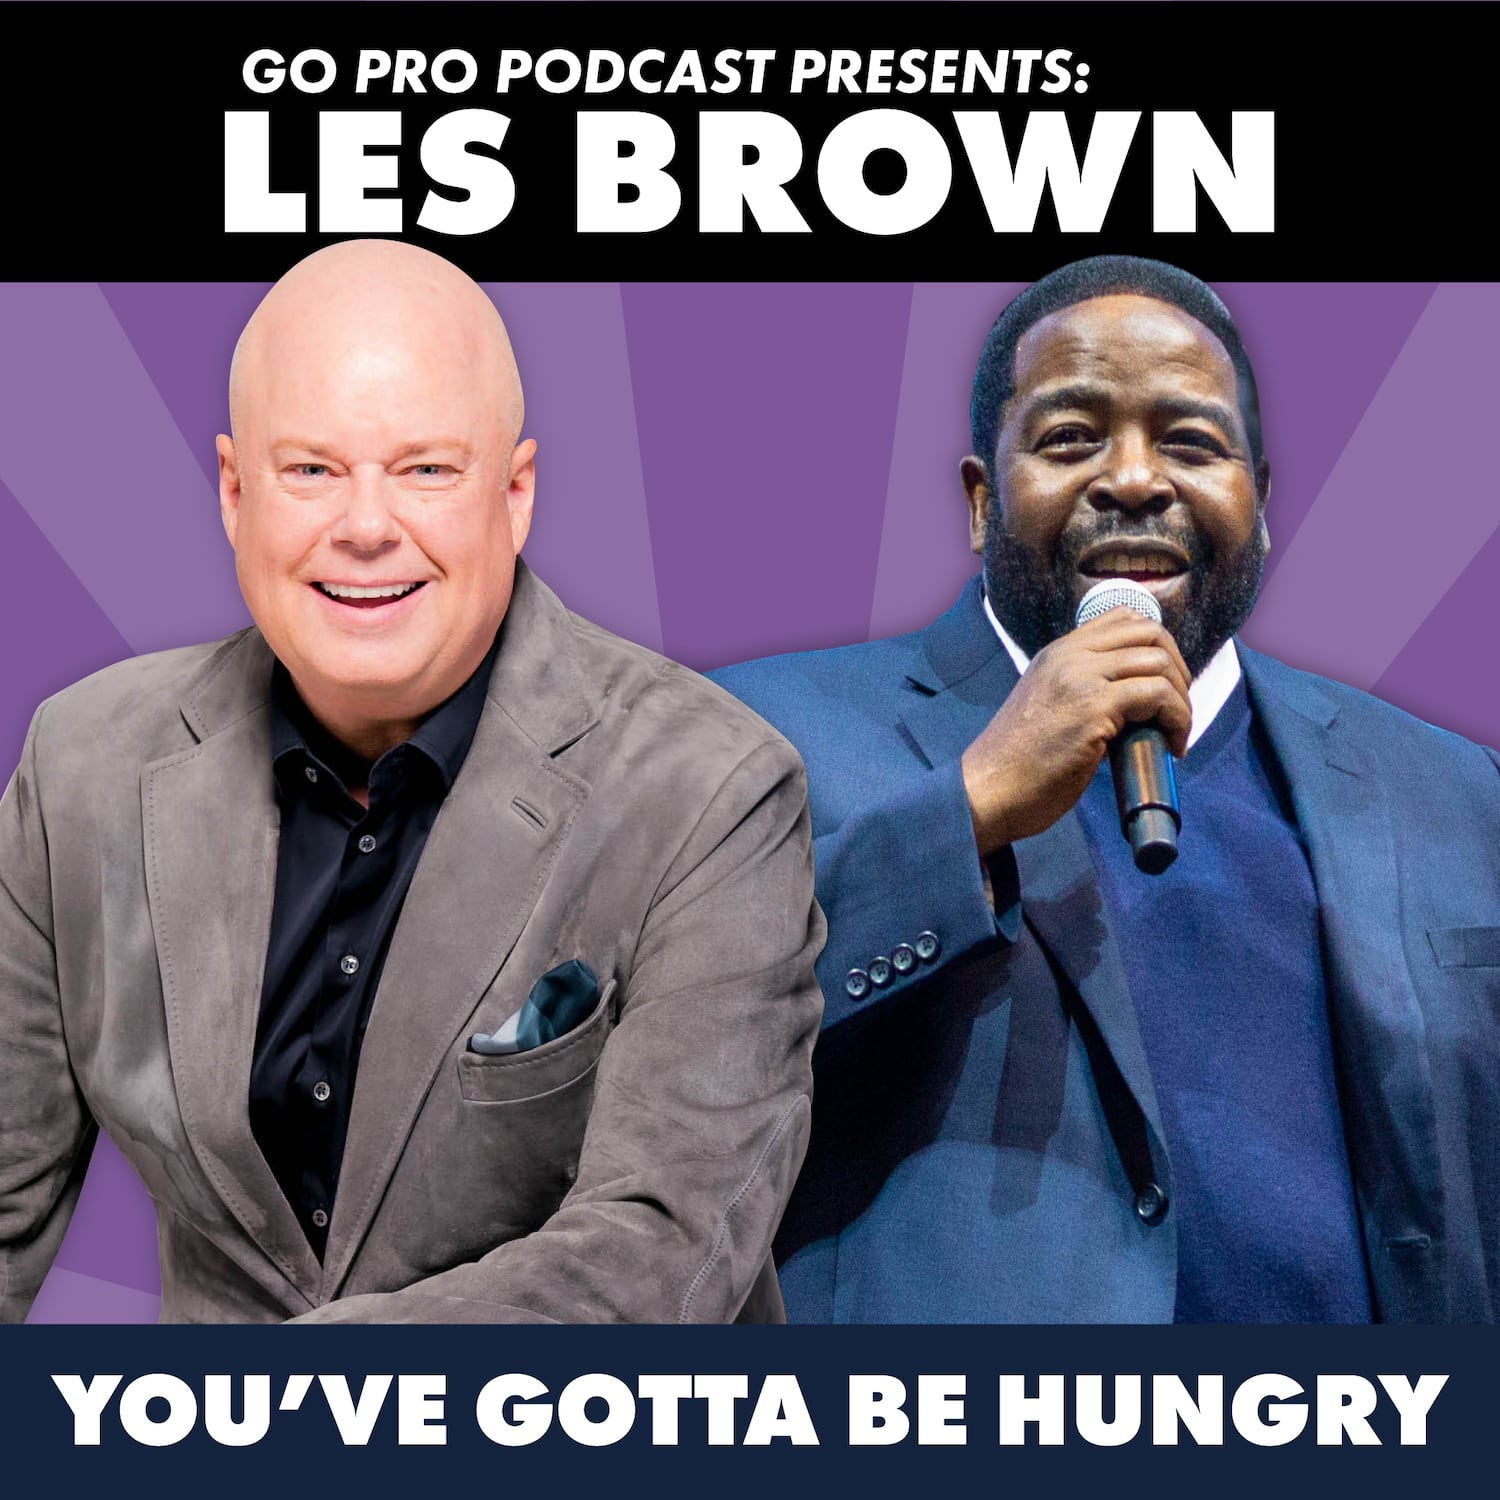 Les Brown: You've Gotta Be Hungry